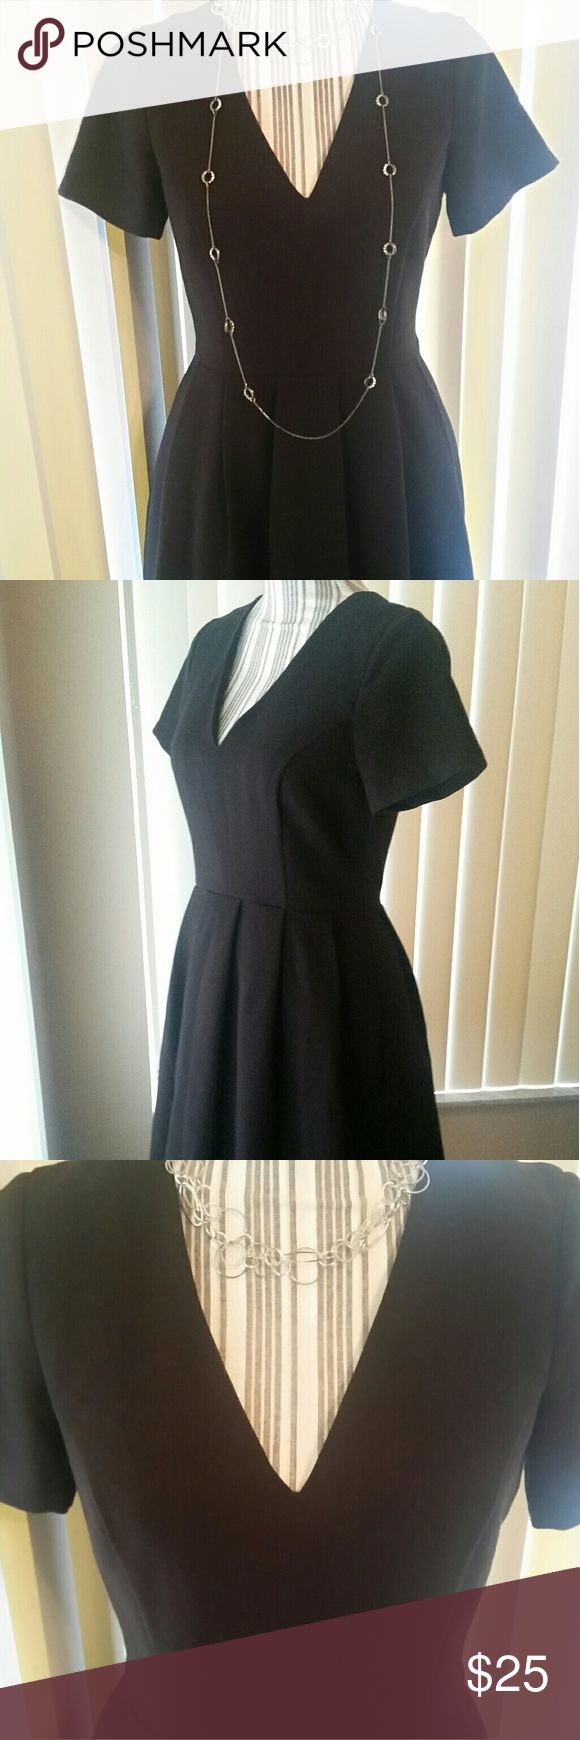 Dress Little black dress. Great condition. No stains or signs of wear. Zips in back. Full skirt. ASOS Dresses Midi